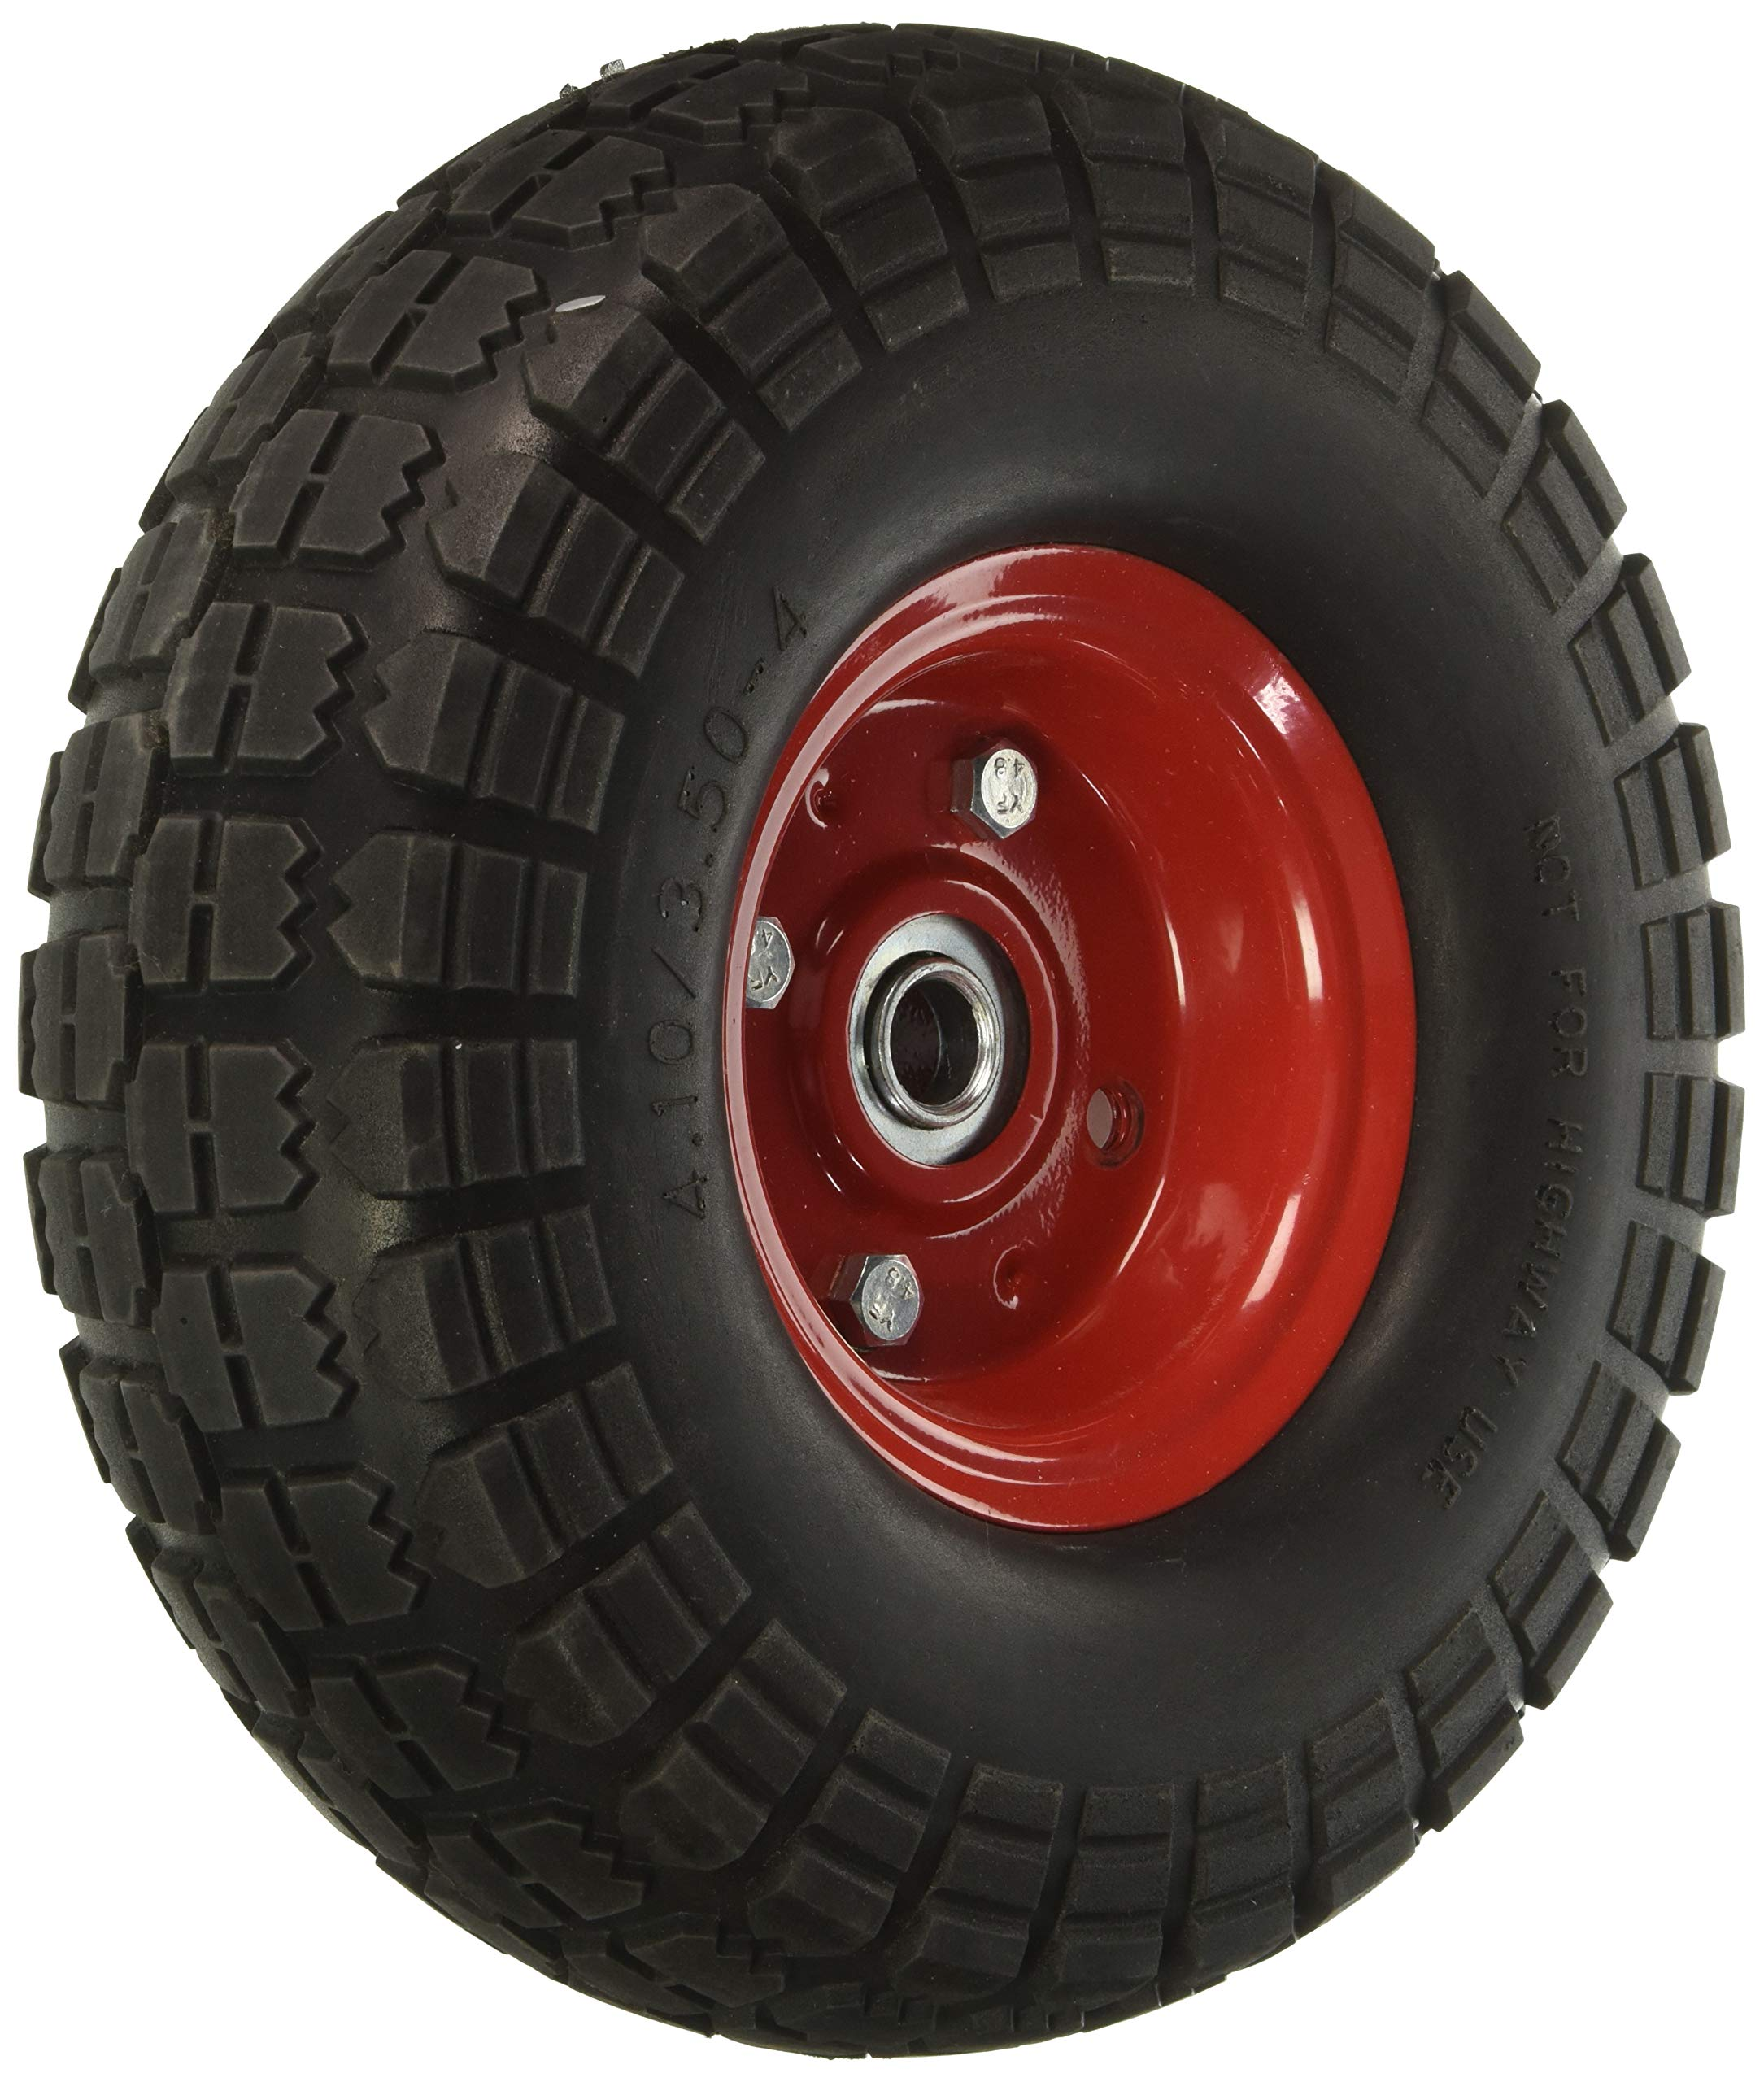 10'' Flat Free Hand Truck Tire and Wheel with 5/8'' Center Shaft Hole by EZ Travel Collection